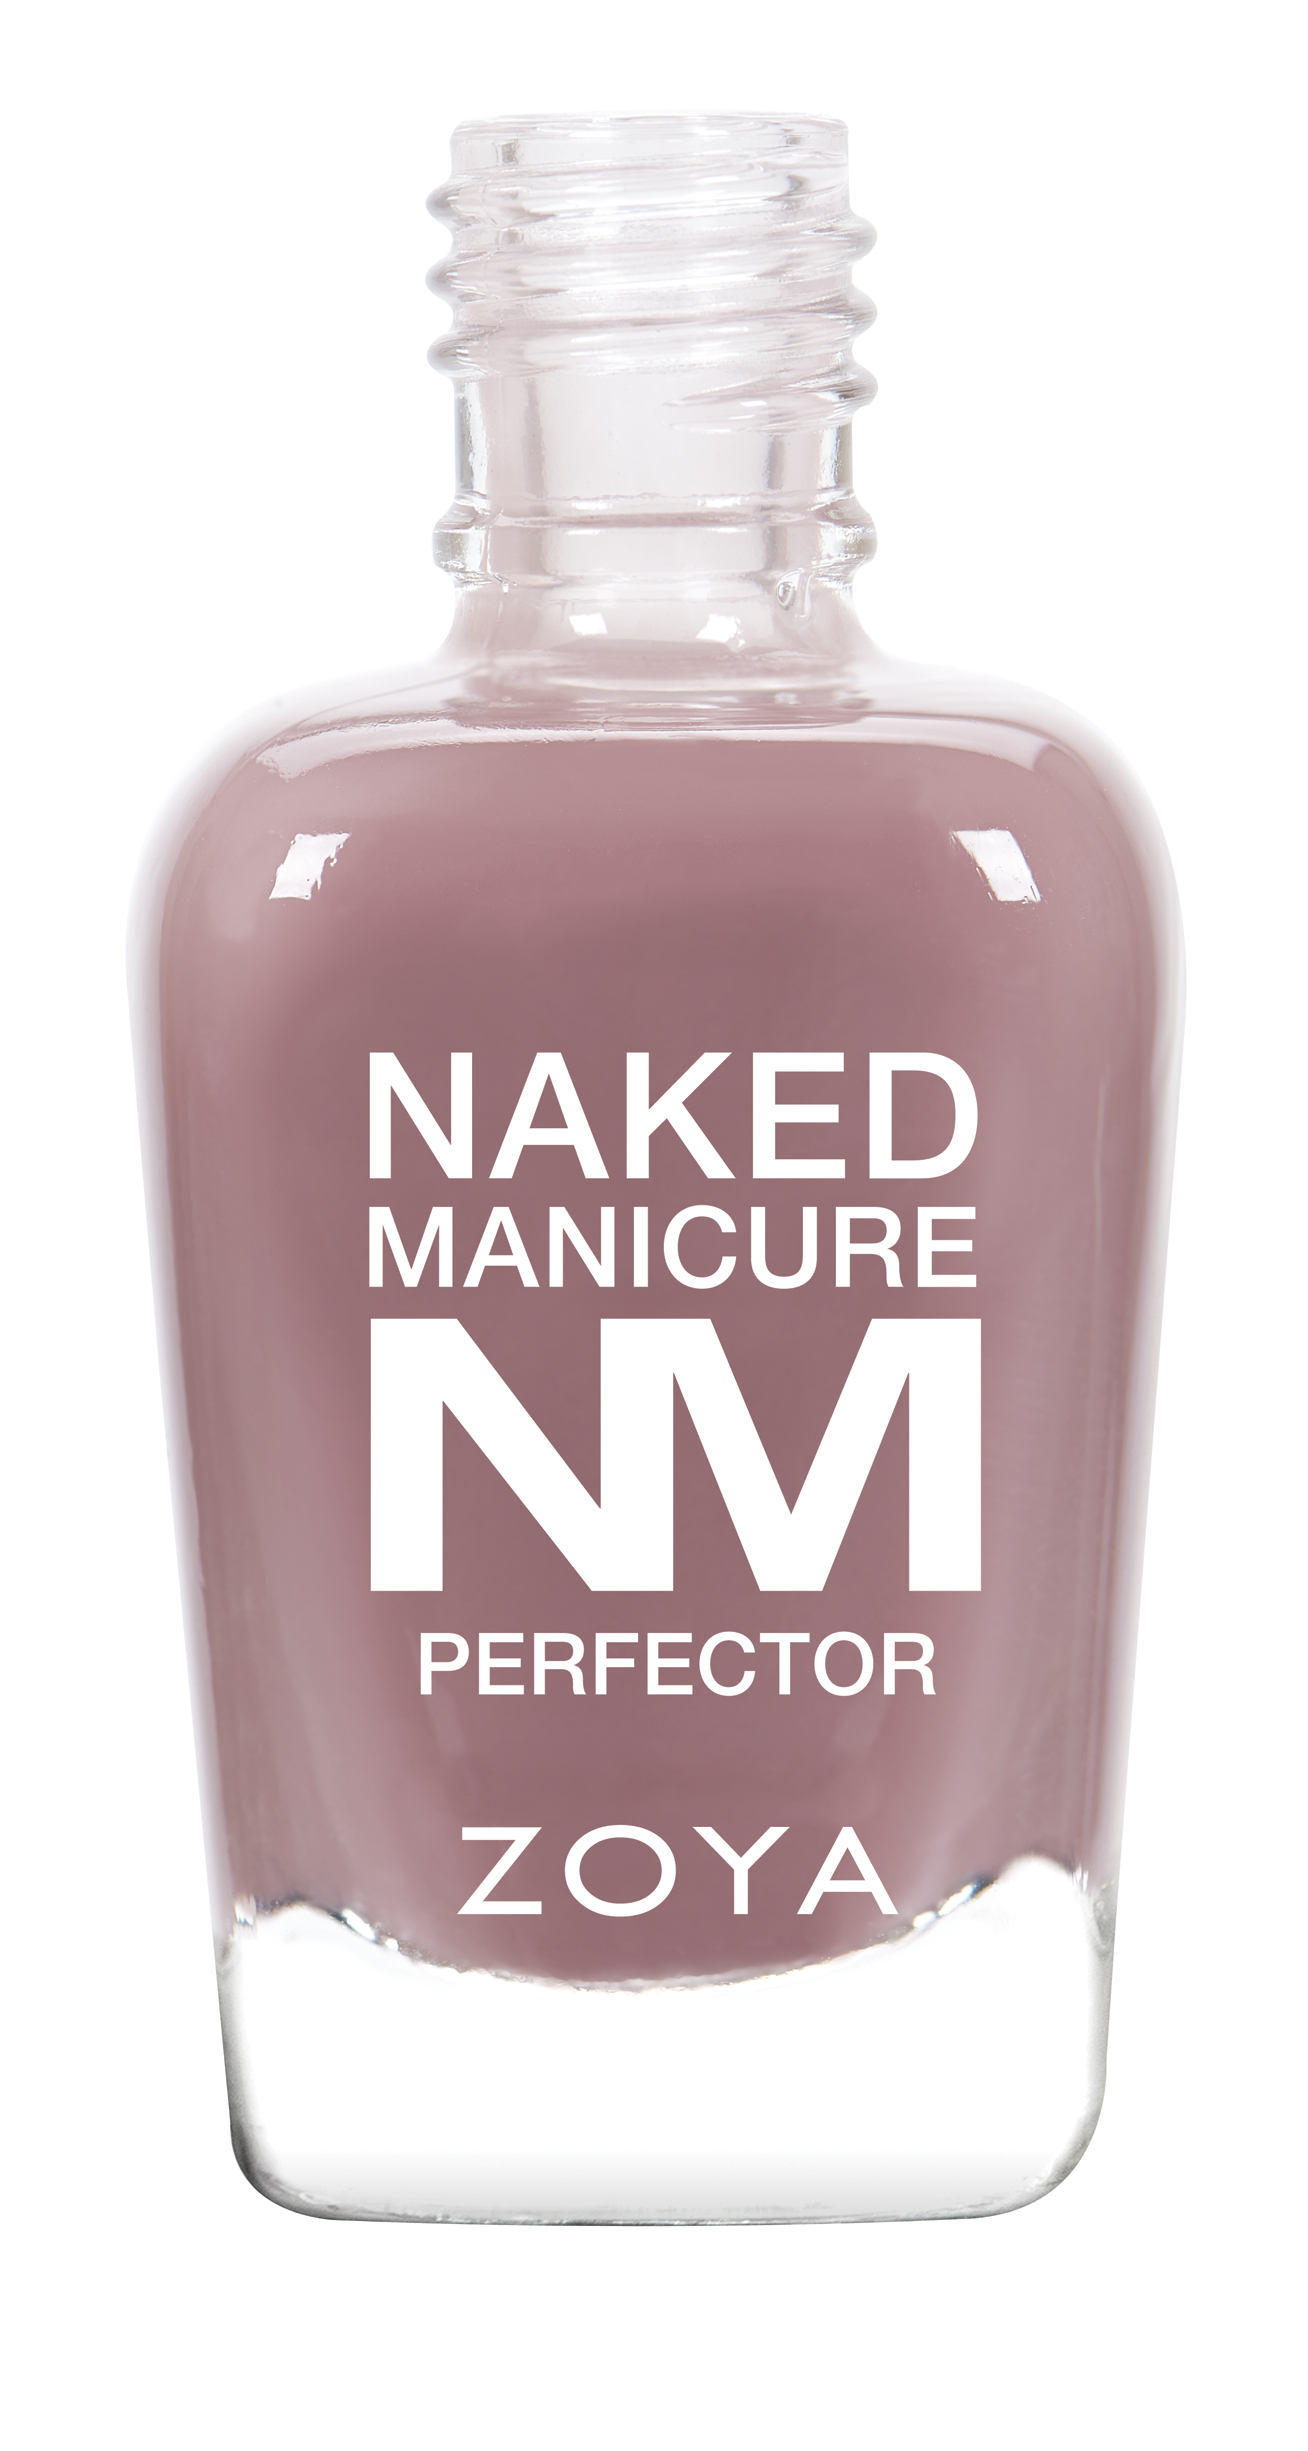 Zoya Naked Manicure Mauve Perfector product-reel